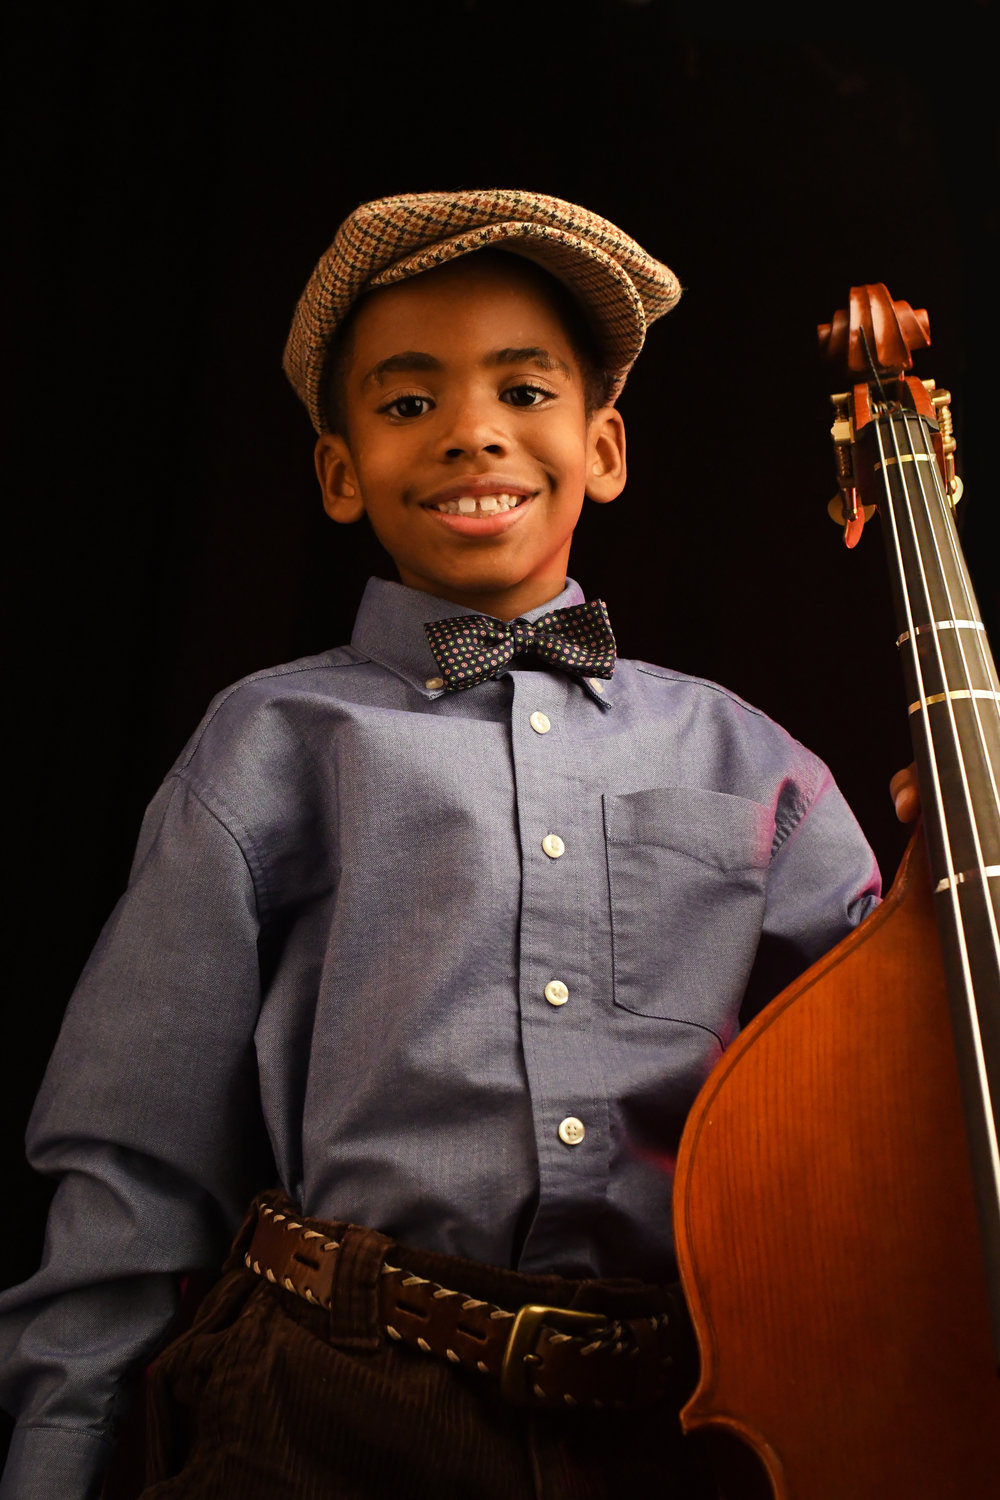 Eight year old bassist Spencer Chambers was featured October 3rd on Are You Kidding Me? Watch the segment here: - http://www.fox29.com/good-day/284832935-video